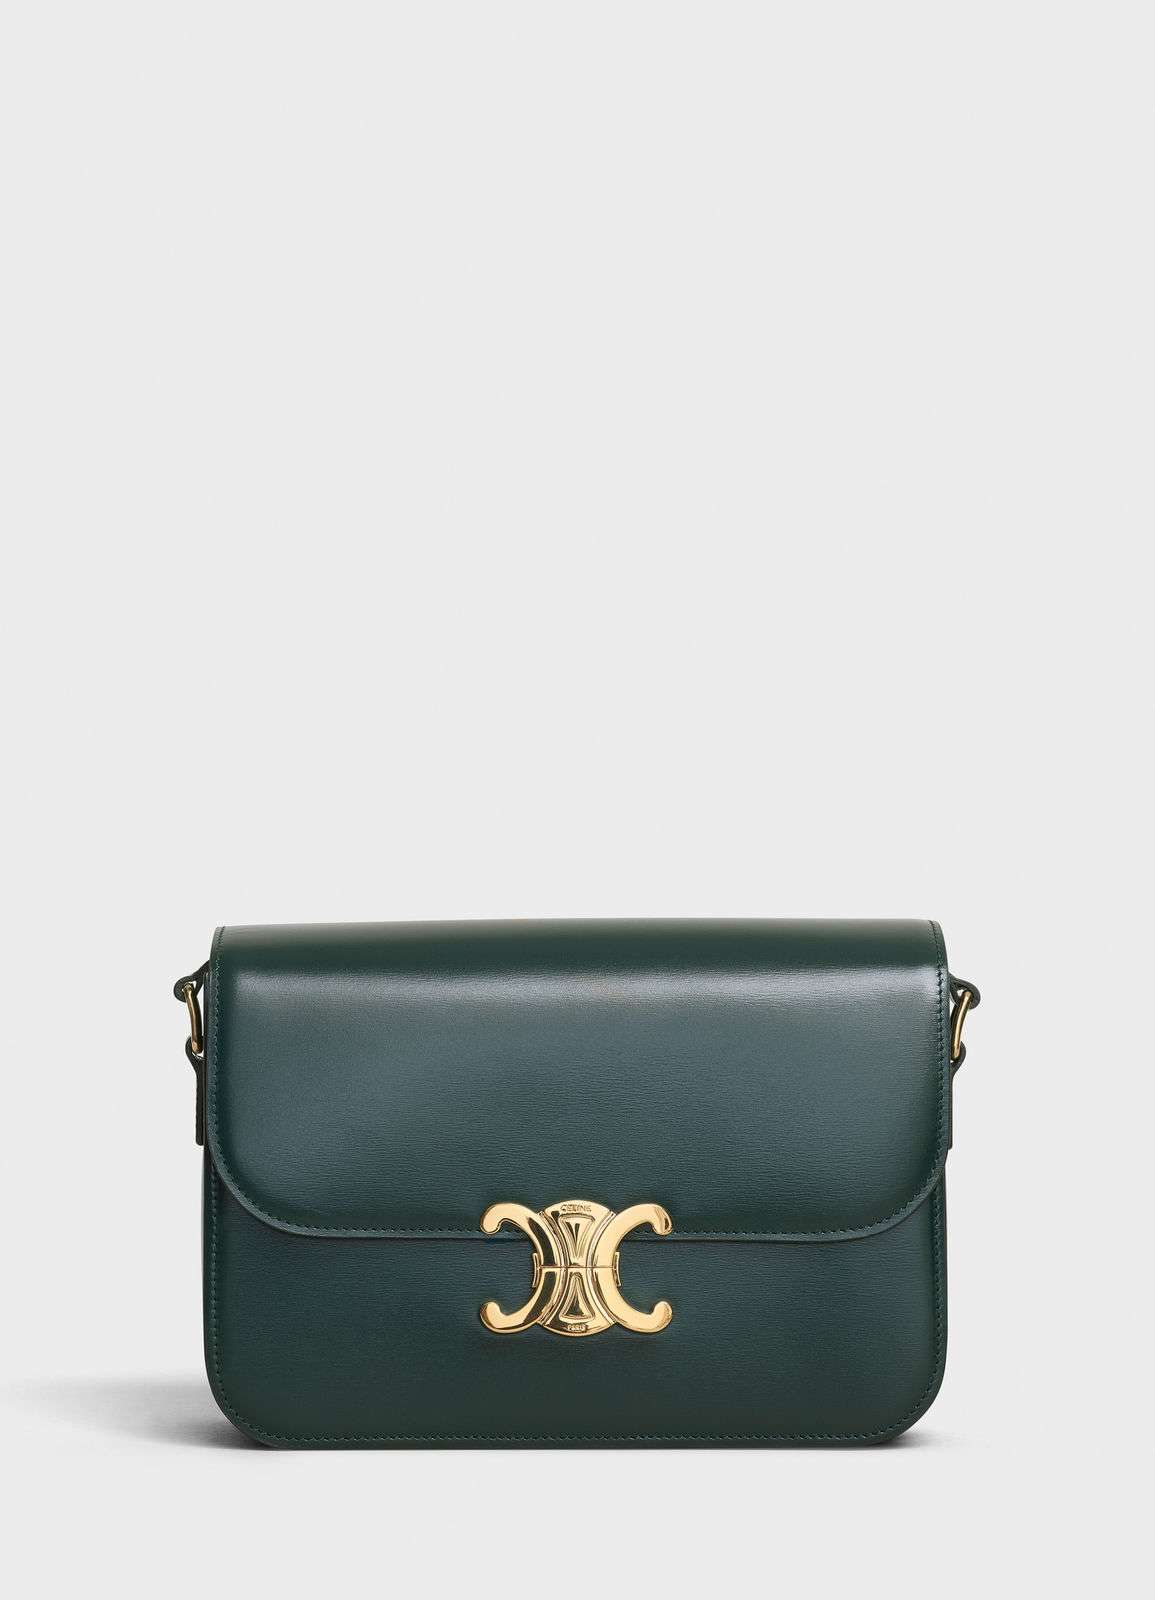 CELINE MEDIUM TRIOMPHE BAG IN SHINY CALFSKIN CL87363 GREEN